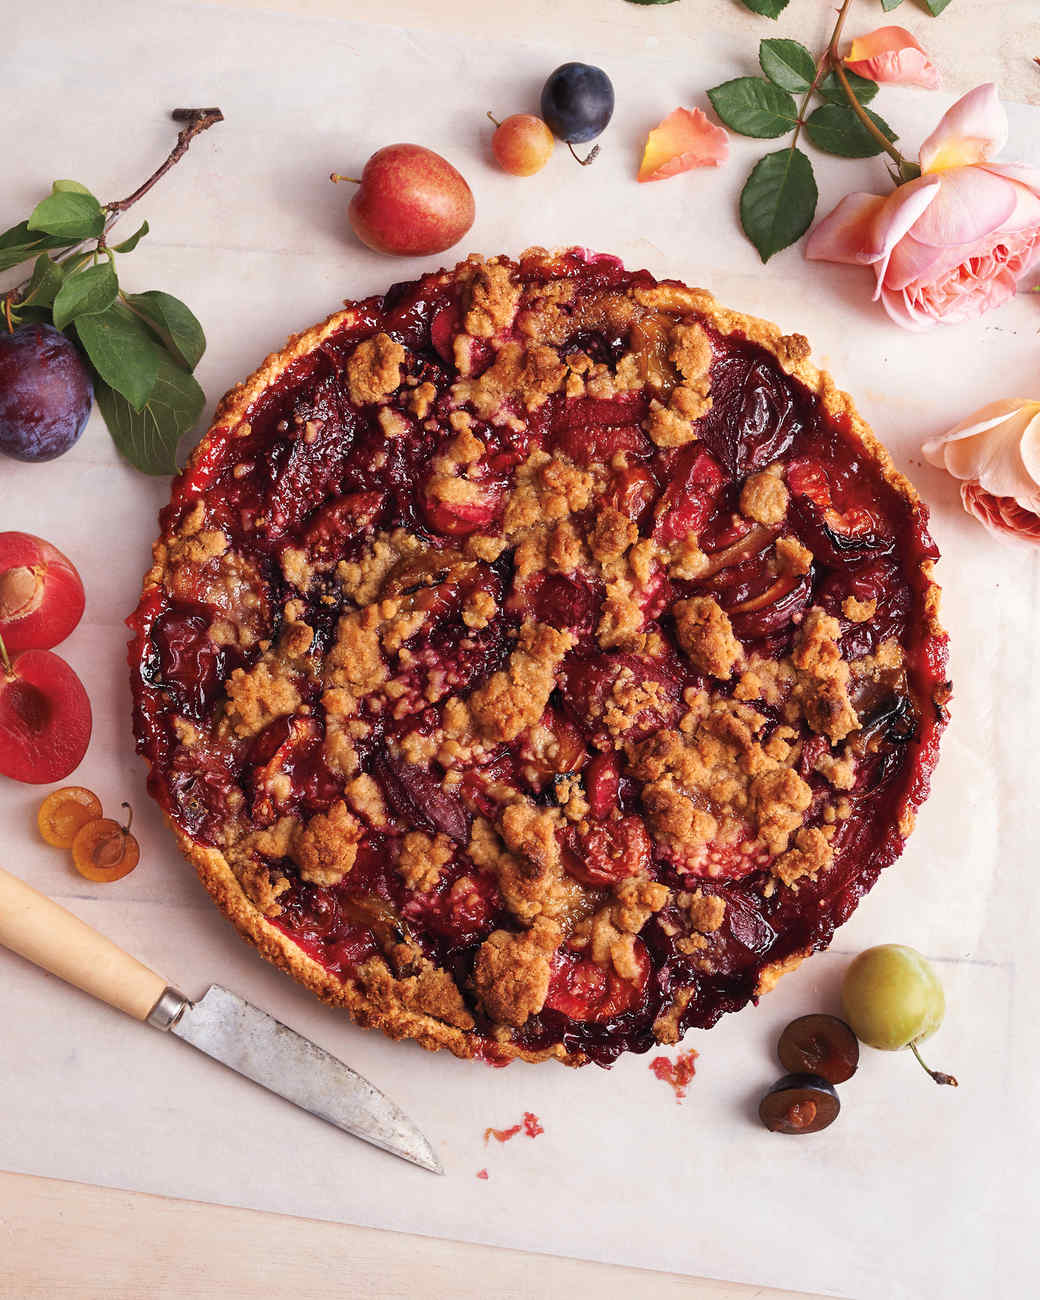 Rose-Scented Plum Crumble Tart